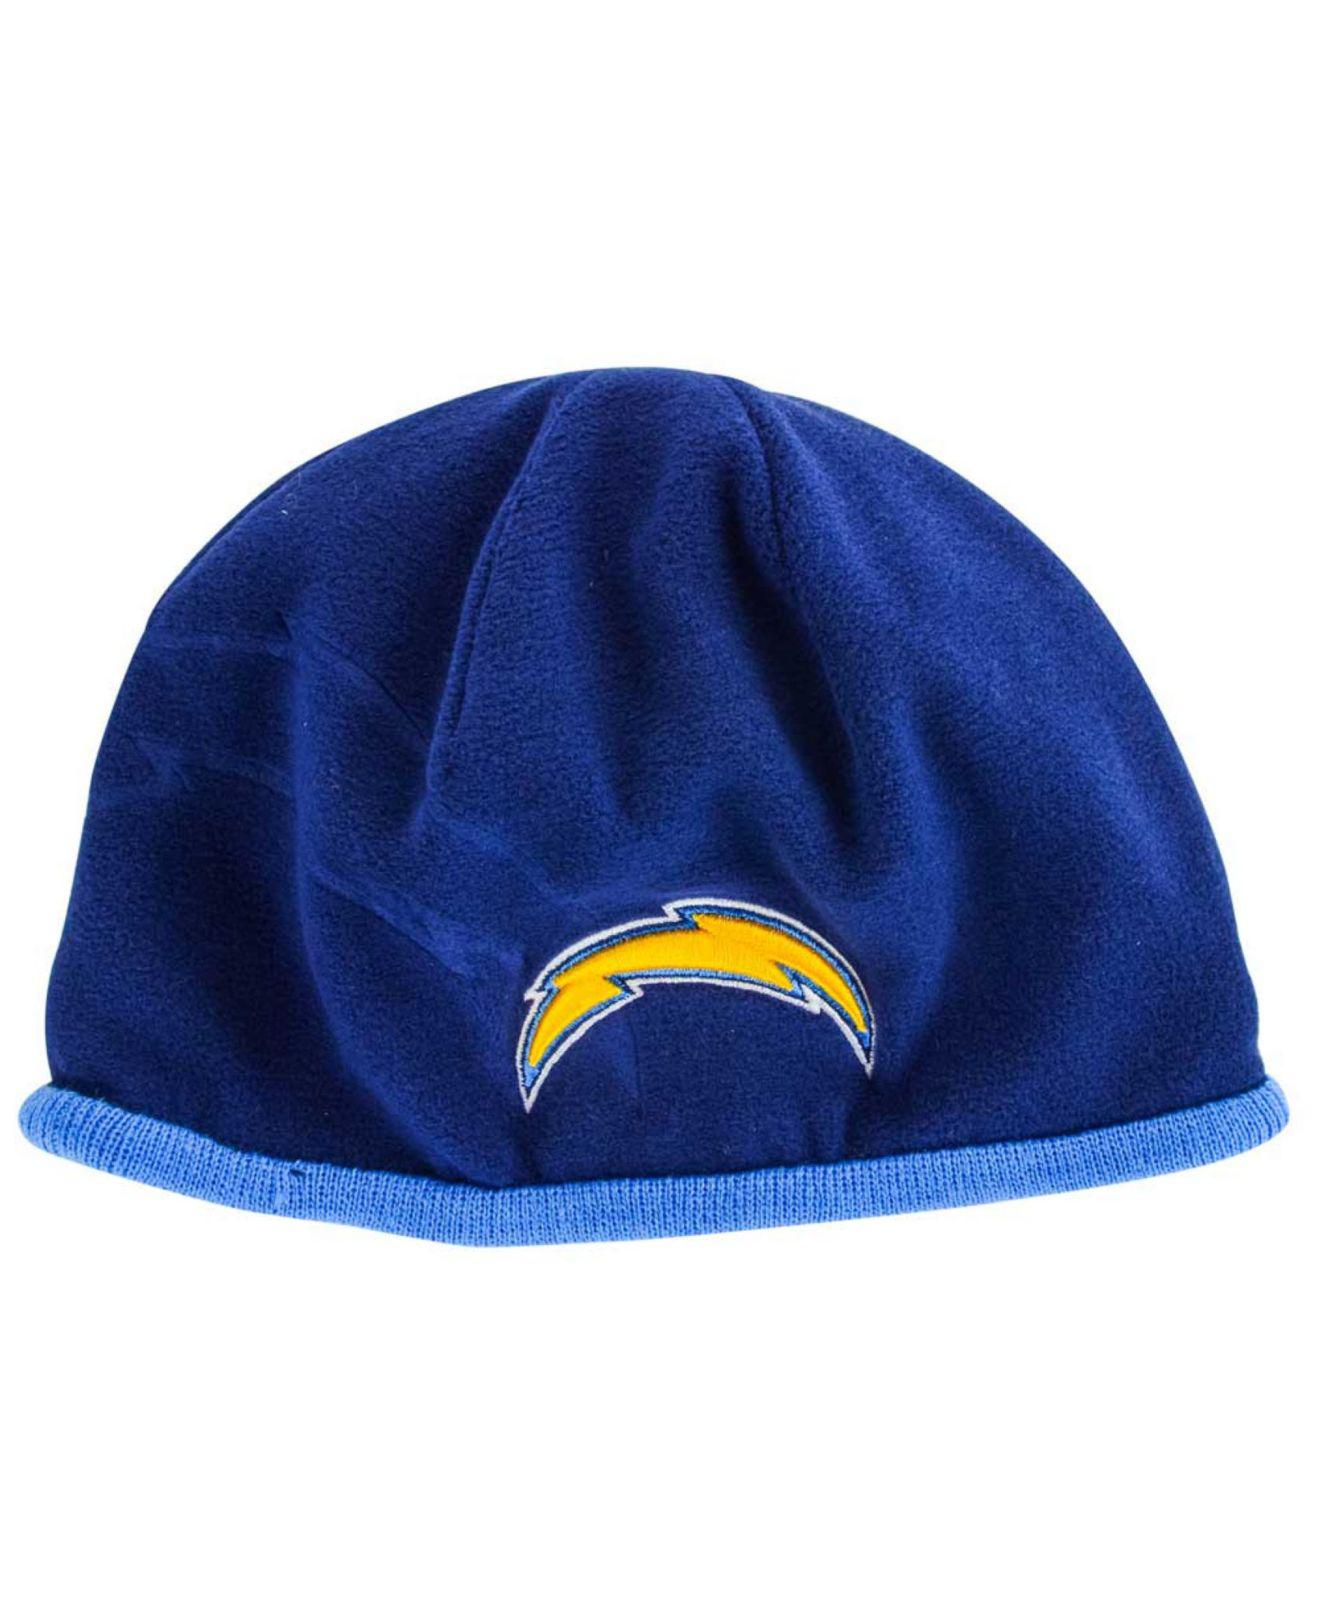 dbef1c30a57 Lyst - Ktz San Diego Chargers Tech Knit Hat in Blue for Men